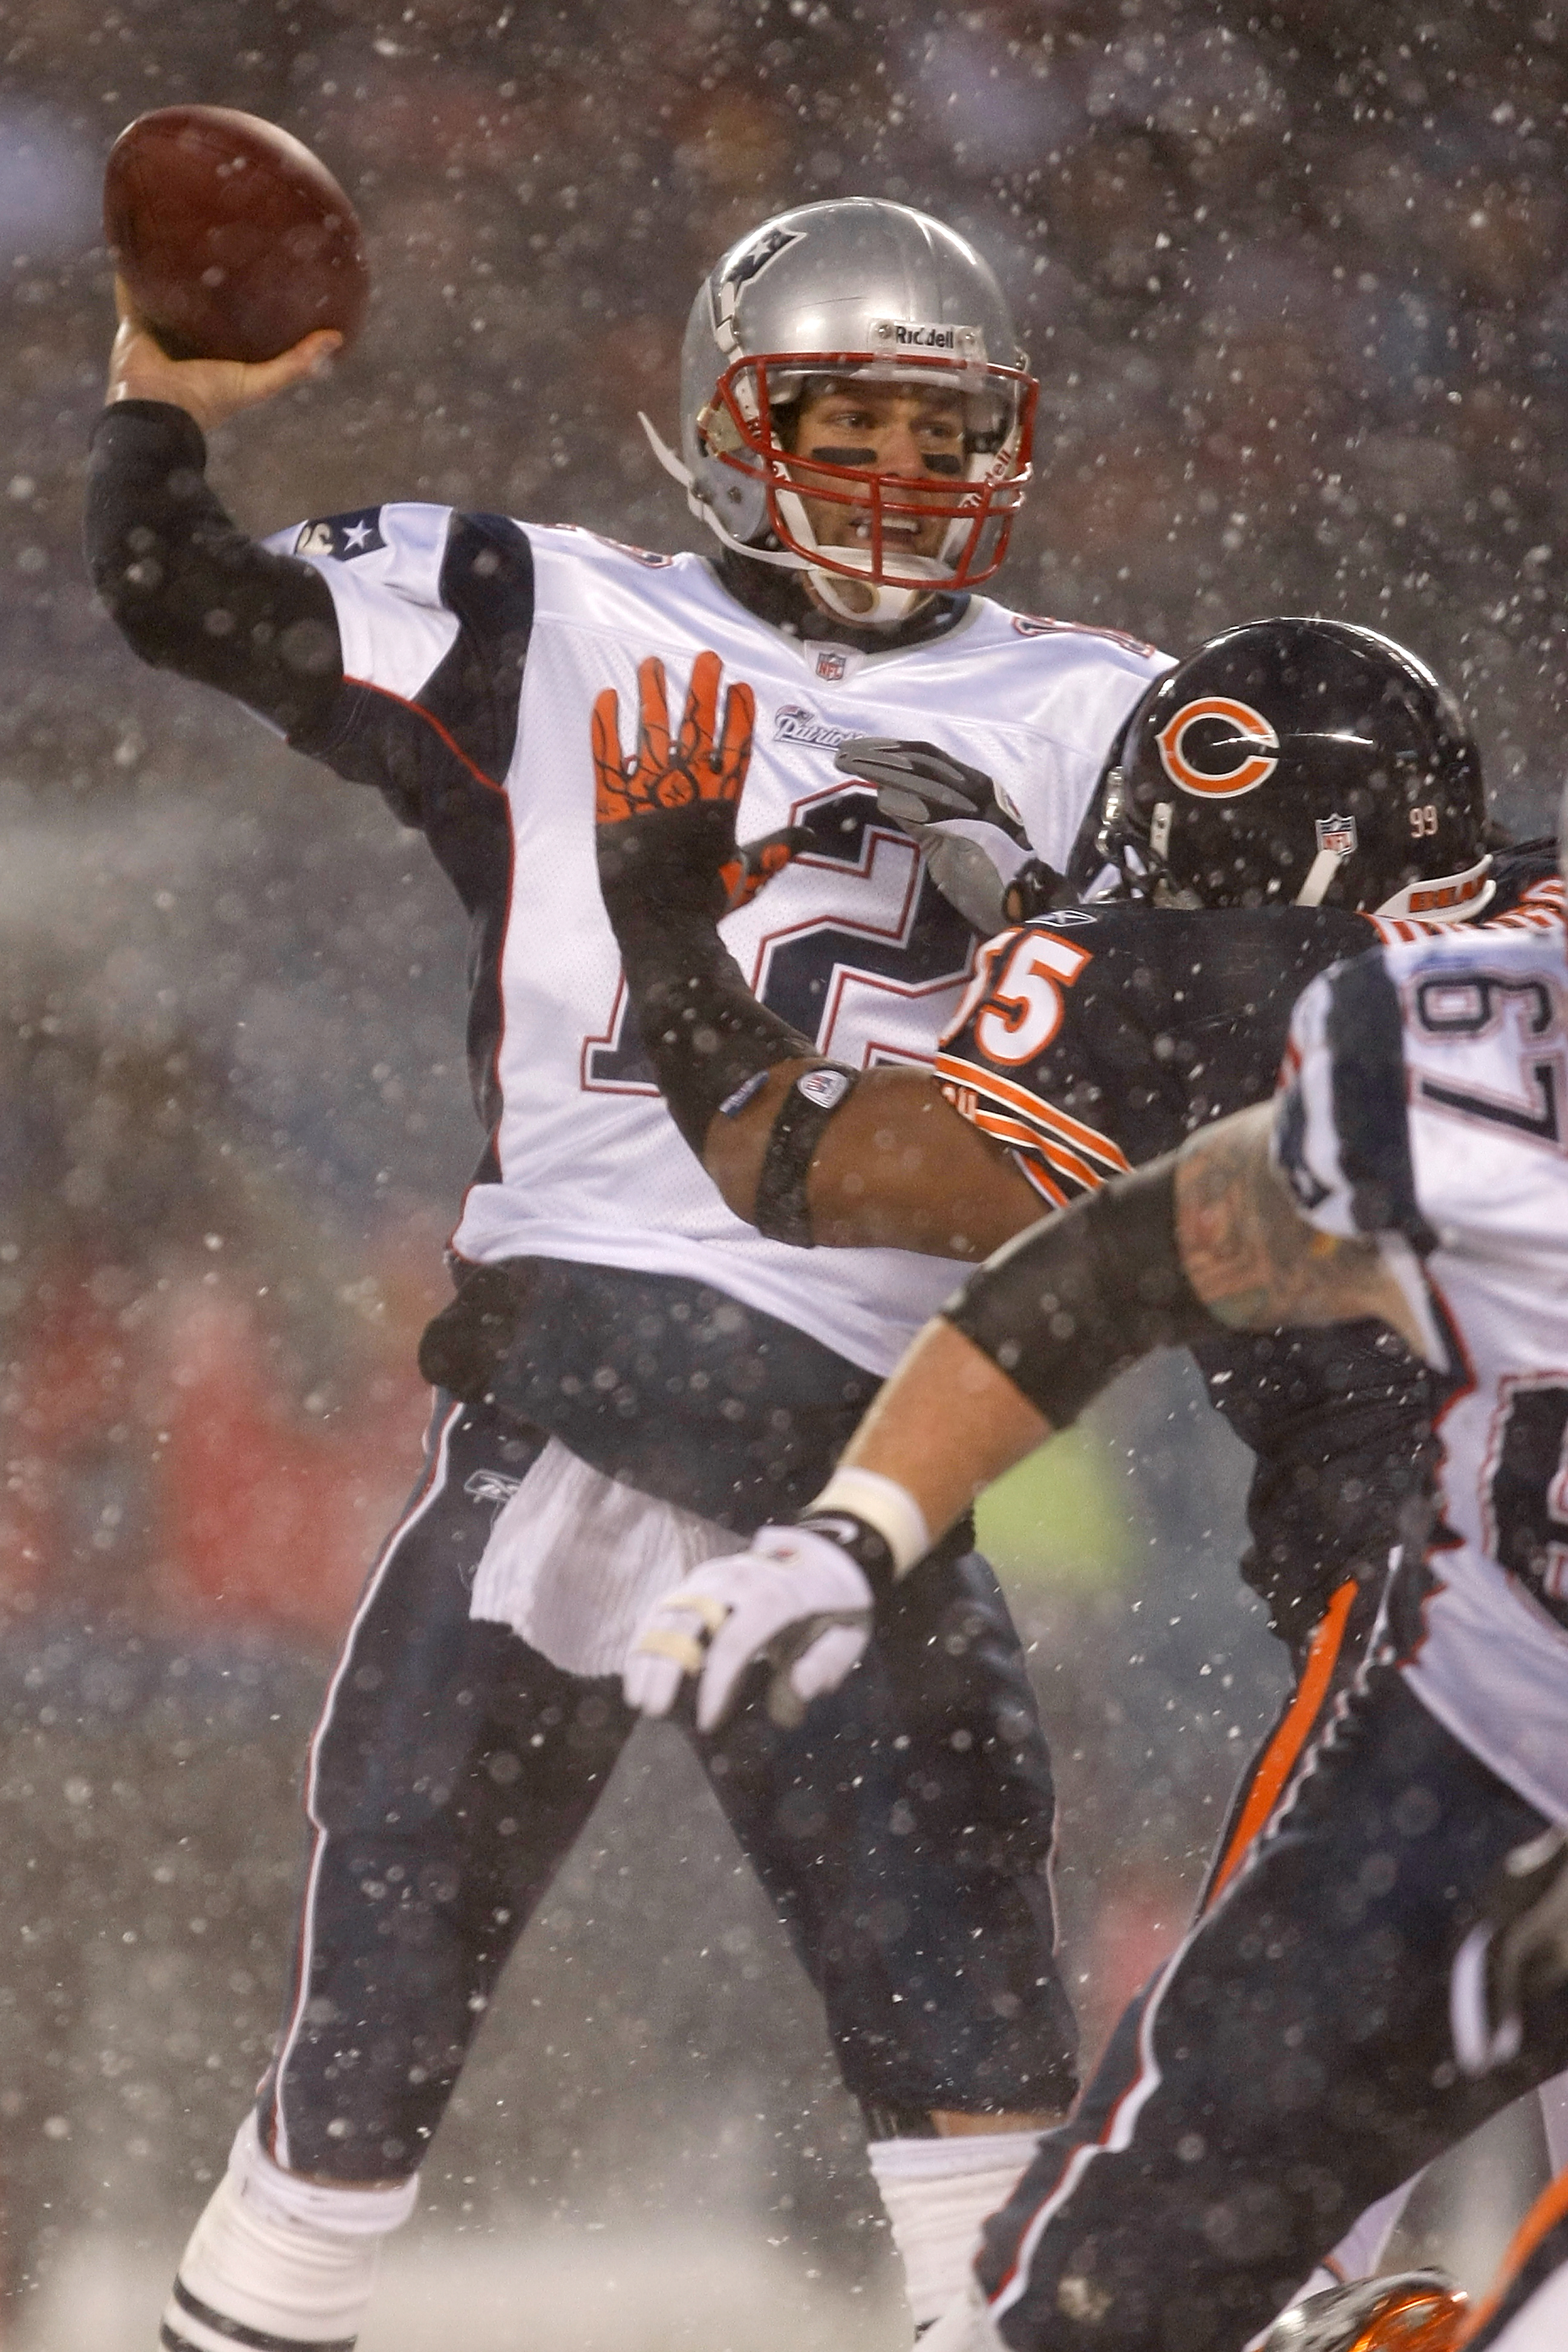 CHICAGO, IL - DECEMBER 12: Tom Brady #12 of the New England Patriots against the Chicago Bears at Soldier Field on December 12, 2010 in Chicago, Illinois. The Patriots defeated the Bears 36-7. (Photo by Scott Boehm/Getty Images)